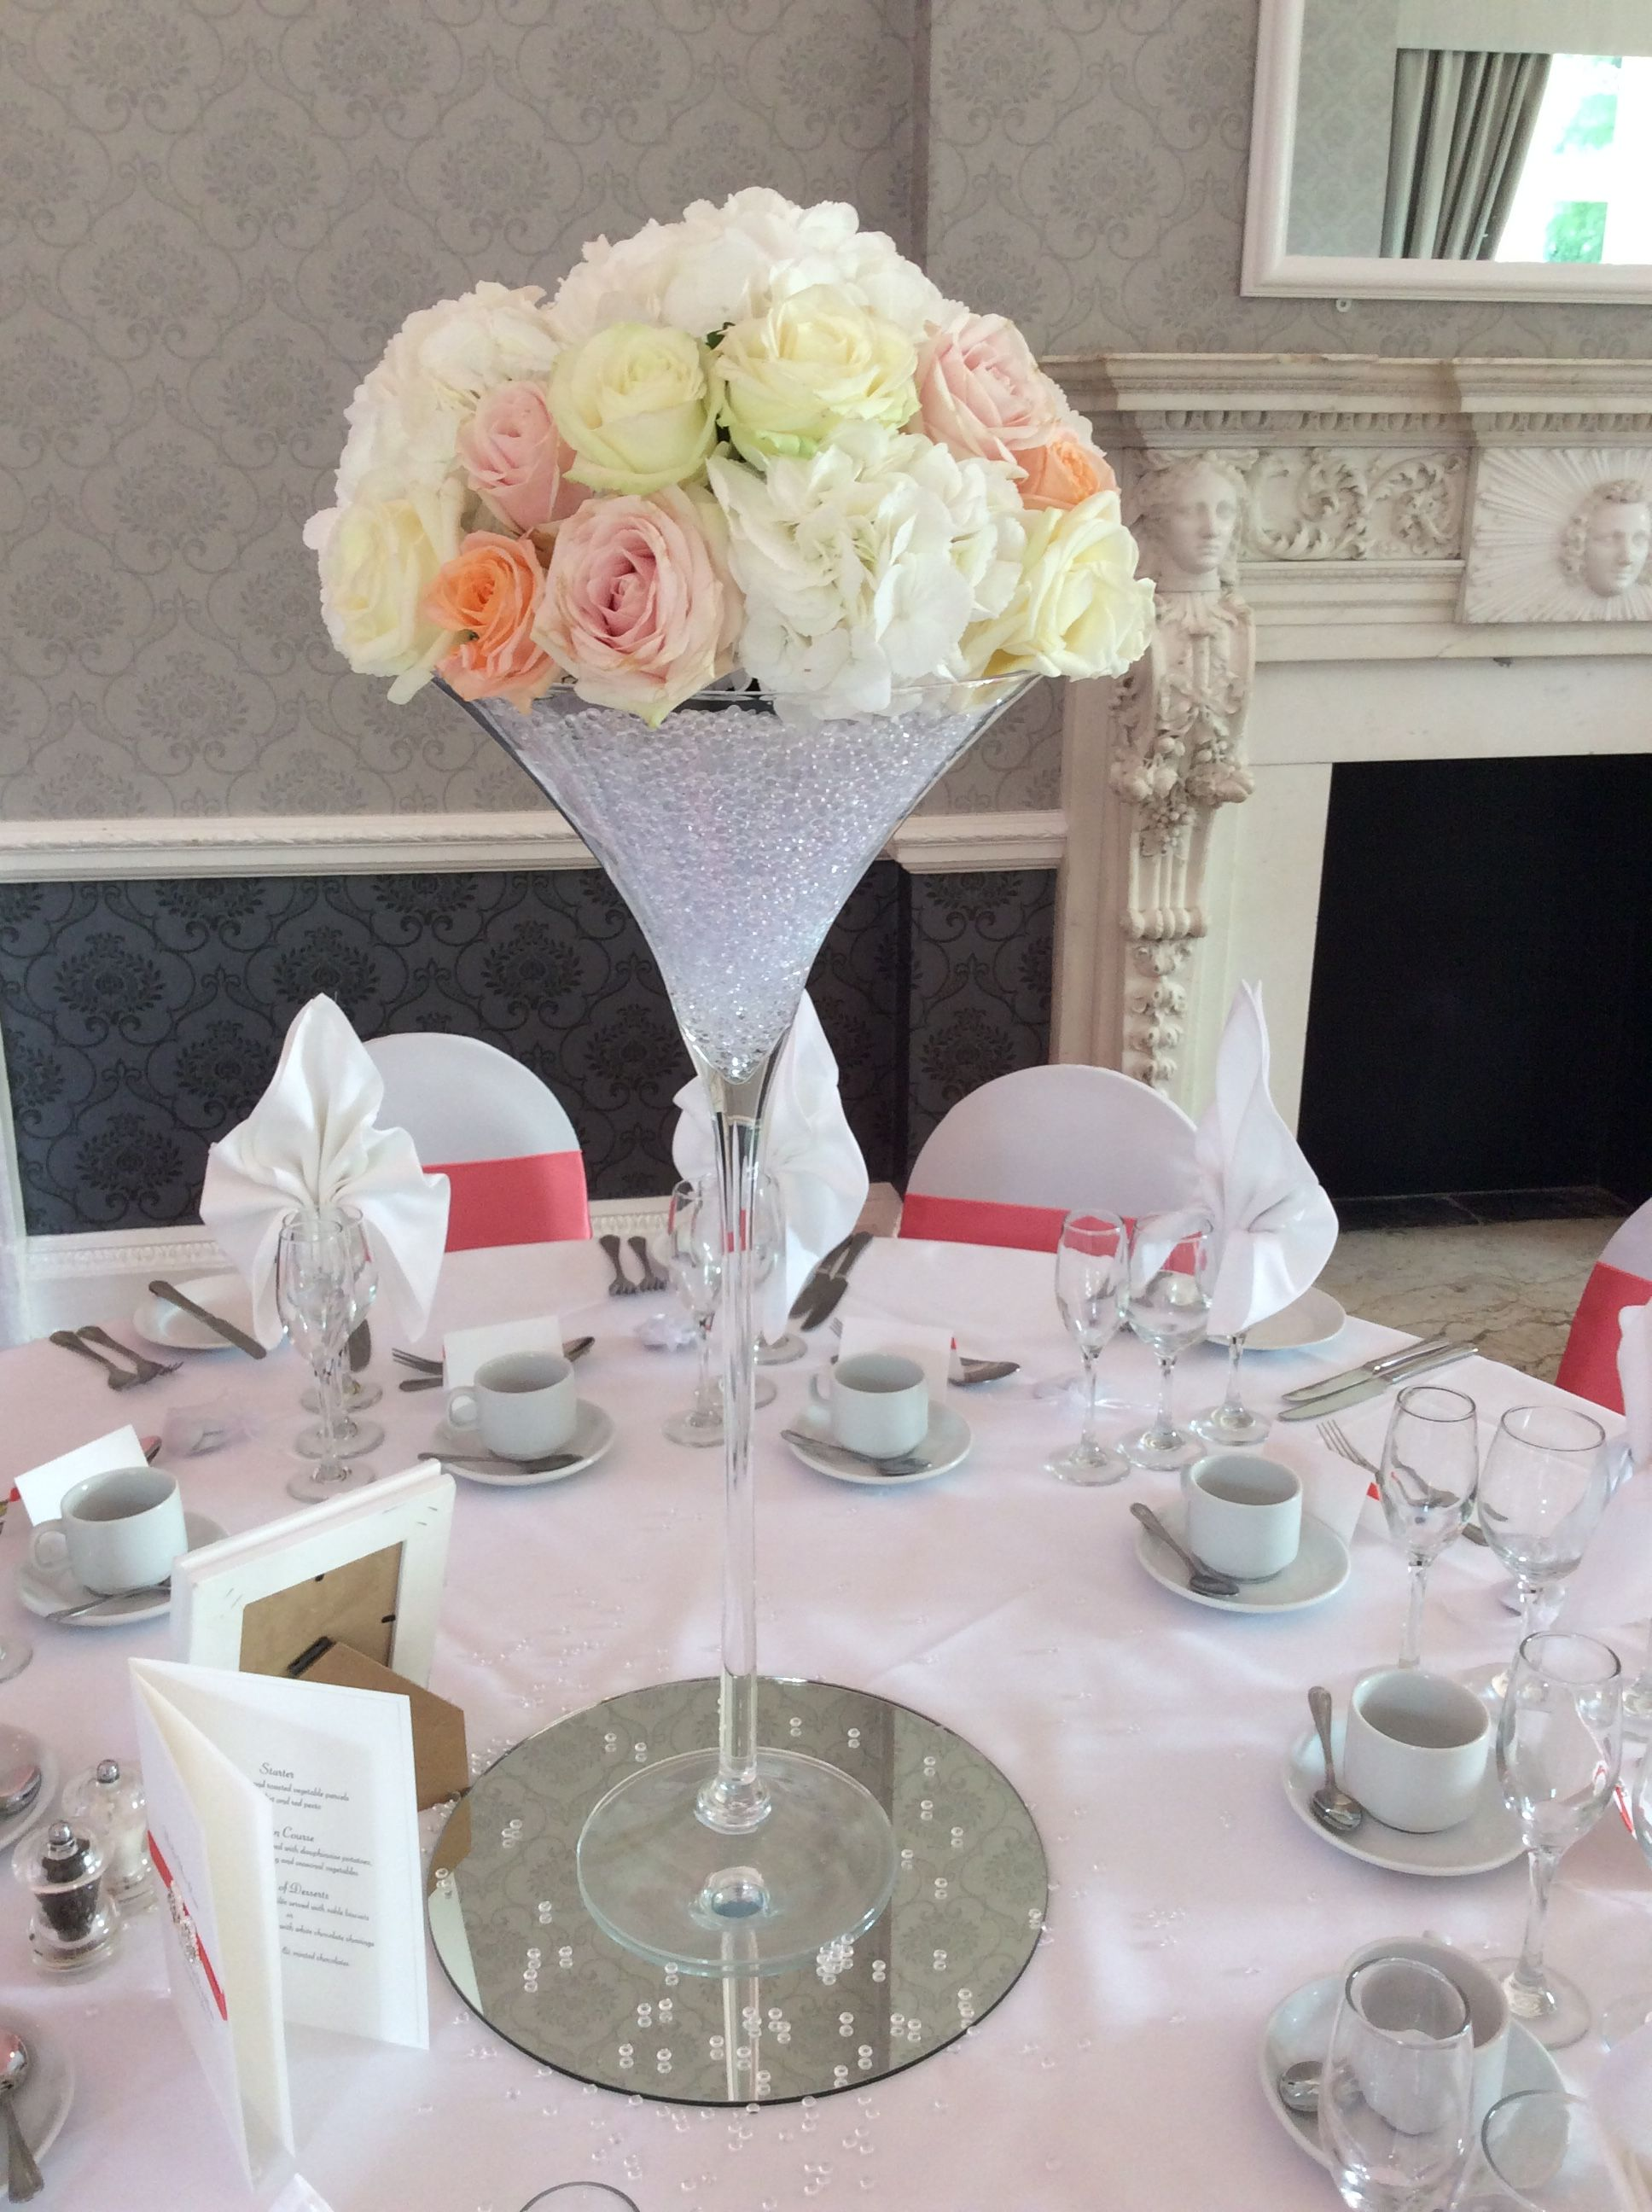 Rose And Hydrangea Centrepiece In Martini Vase By Add Style Uk Martini Vases Wine Glass Centerpieces Hydrangea Centerpiece